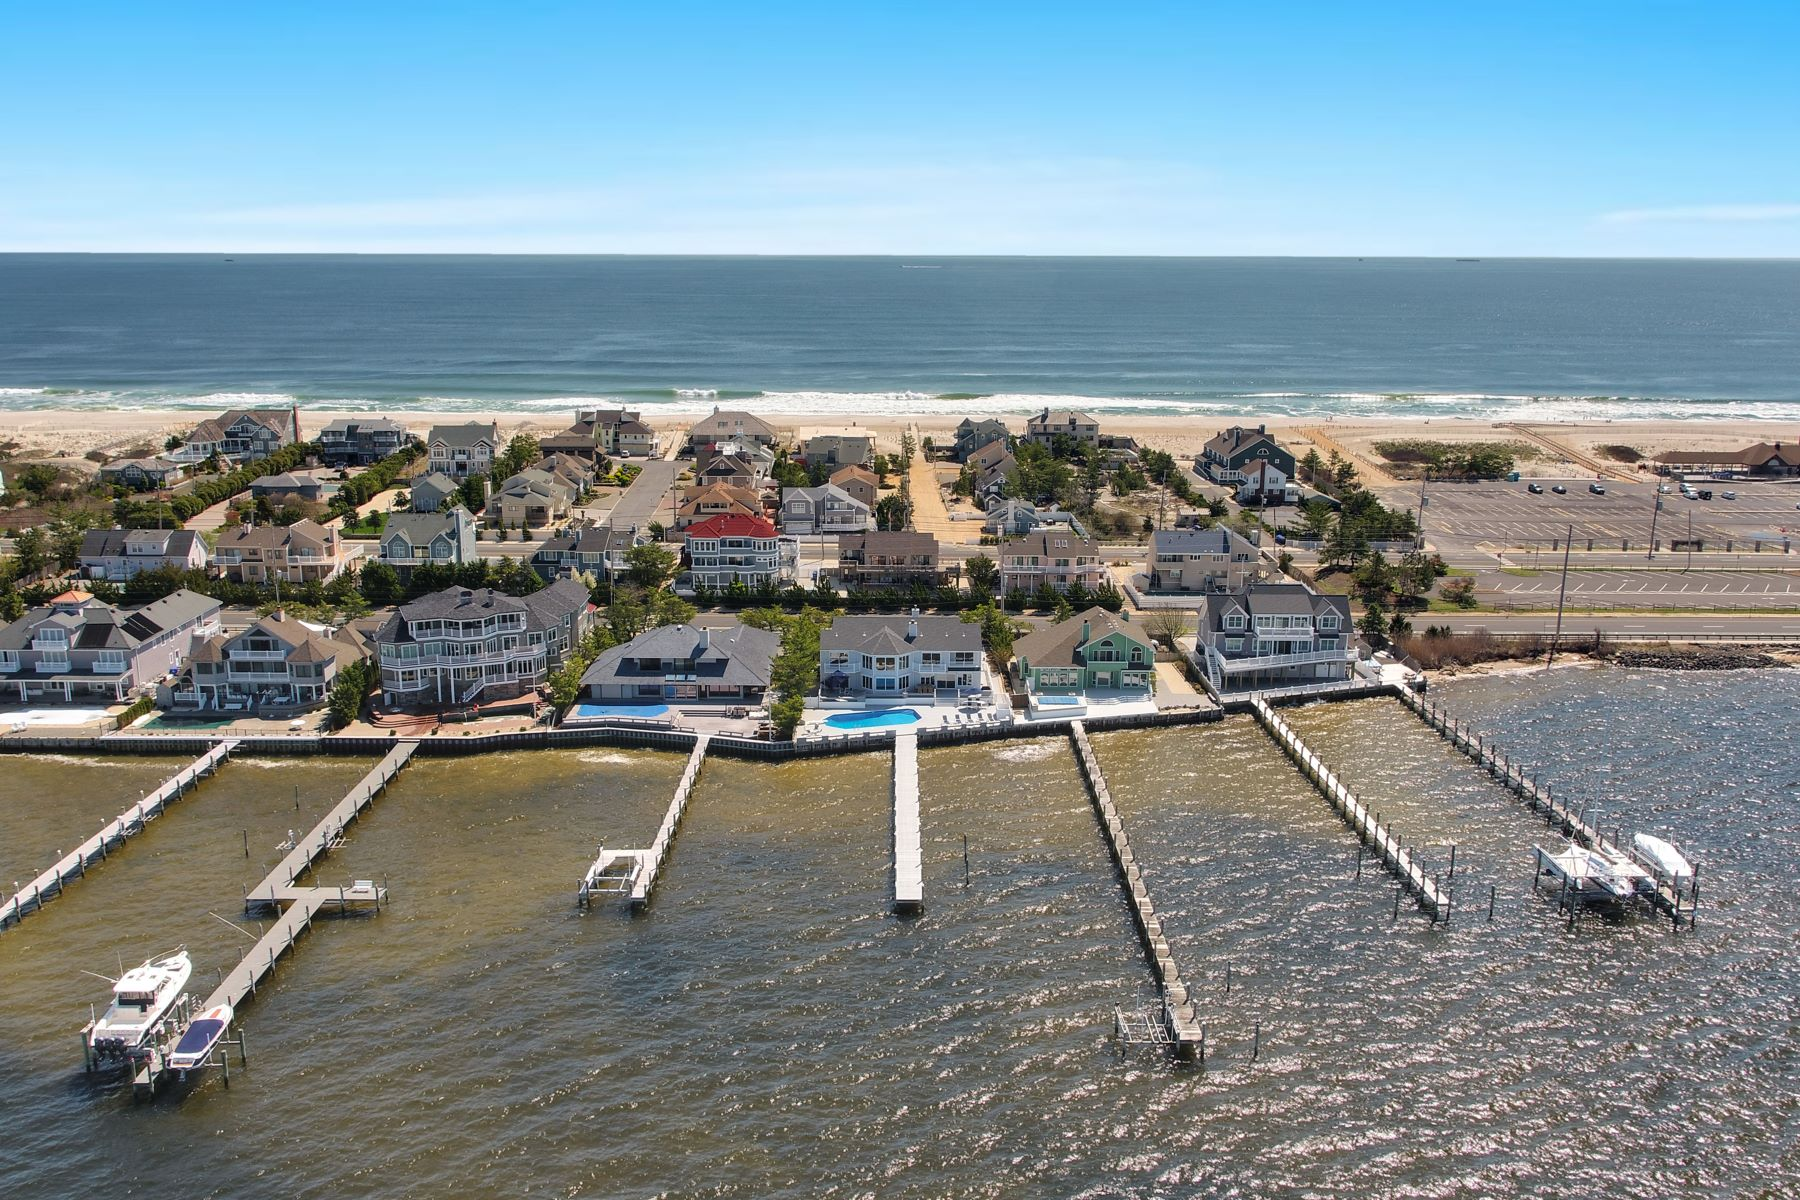 Single Family Home for Sale at Prime Bayfront location in Osprey Dunes 385 S Highway 35, Brick, New Jersey 08738 United States